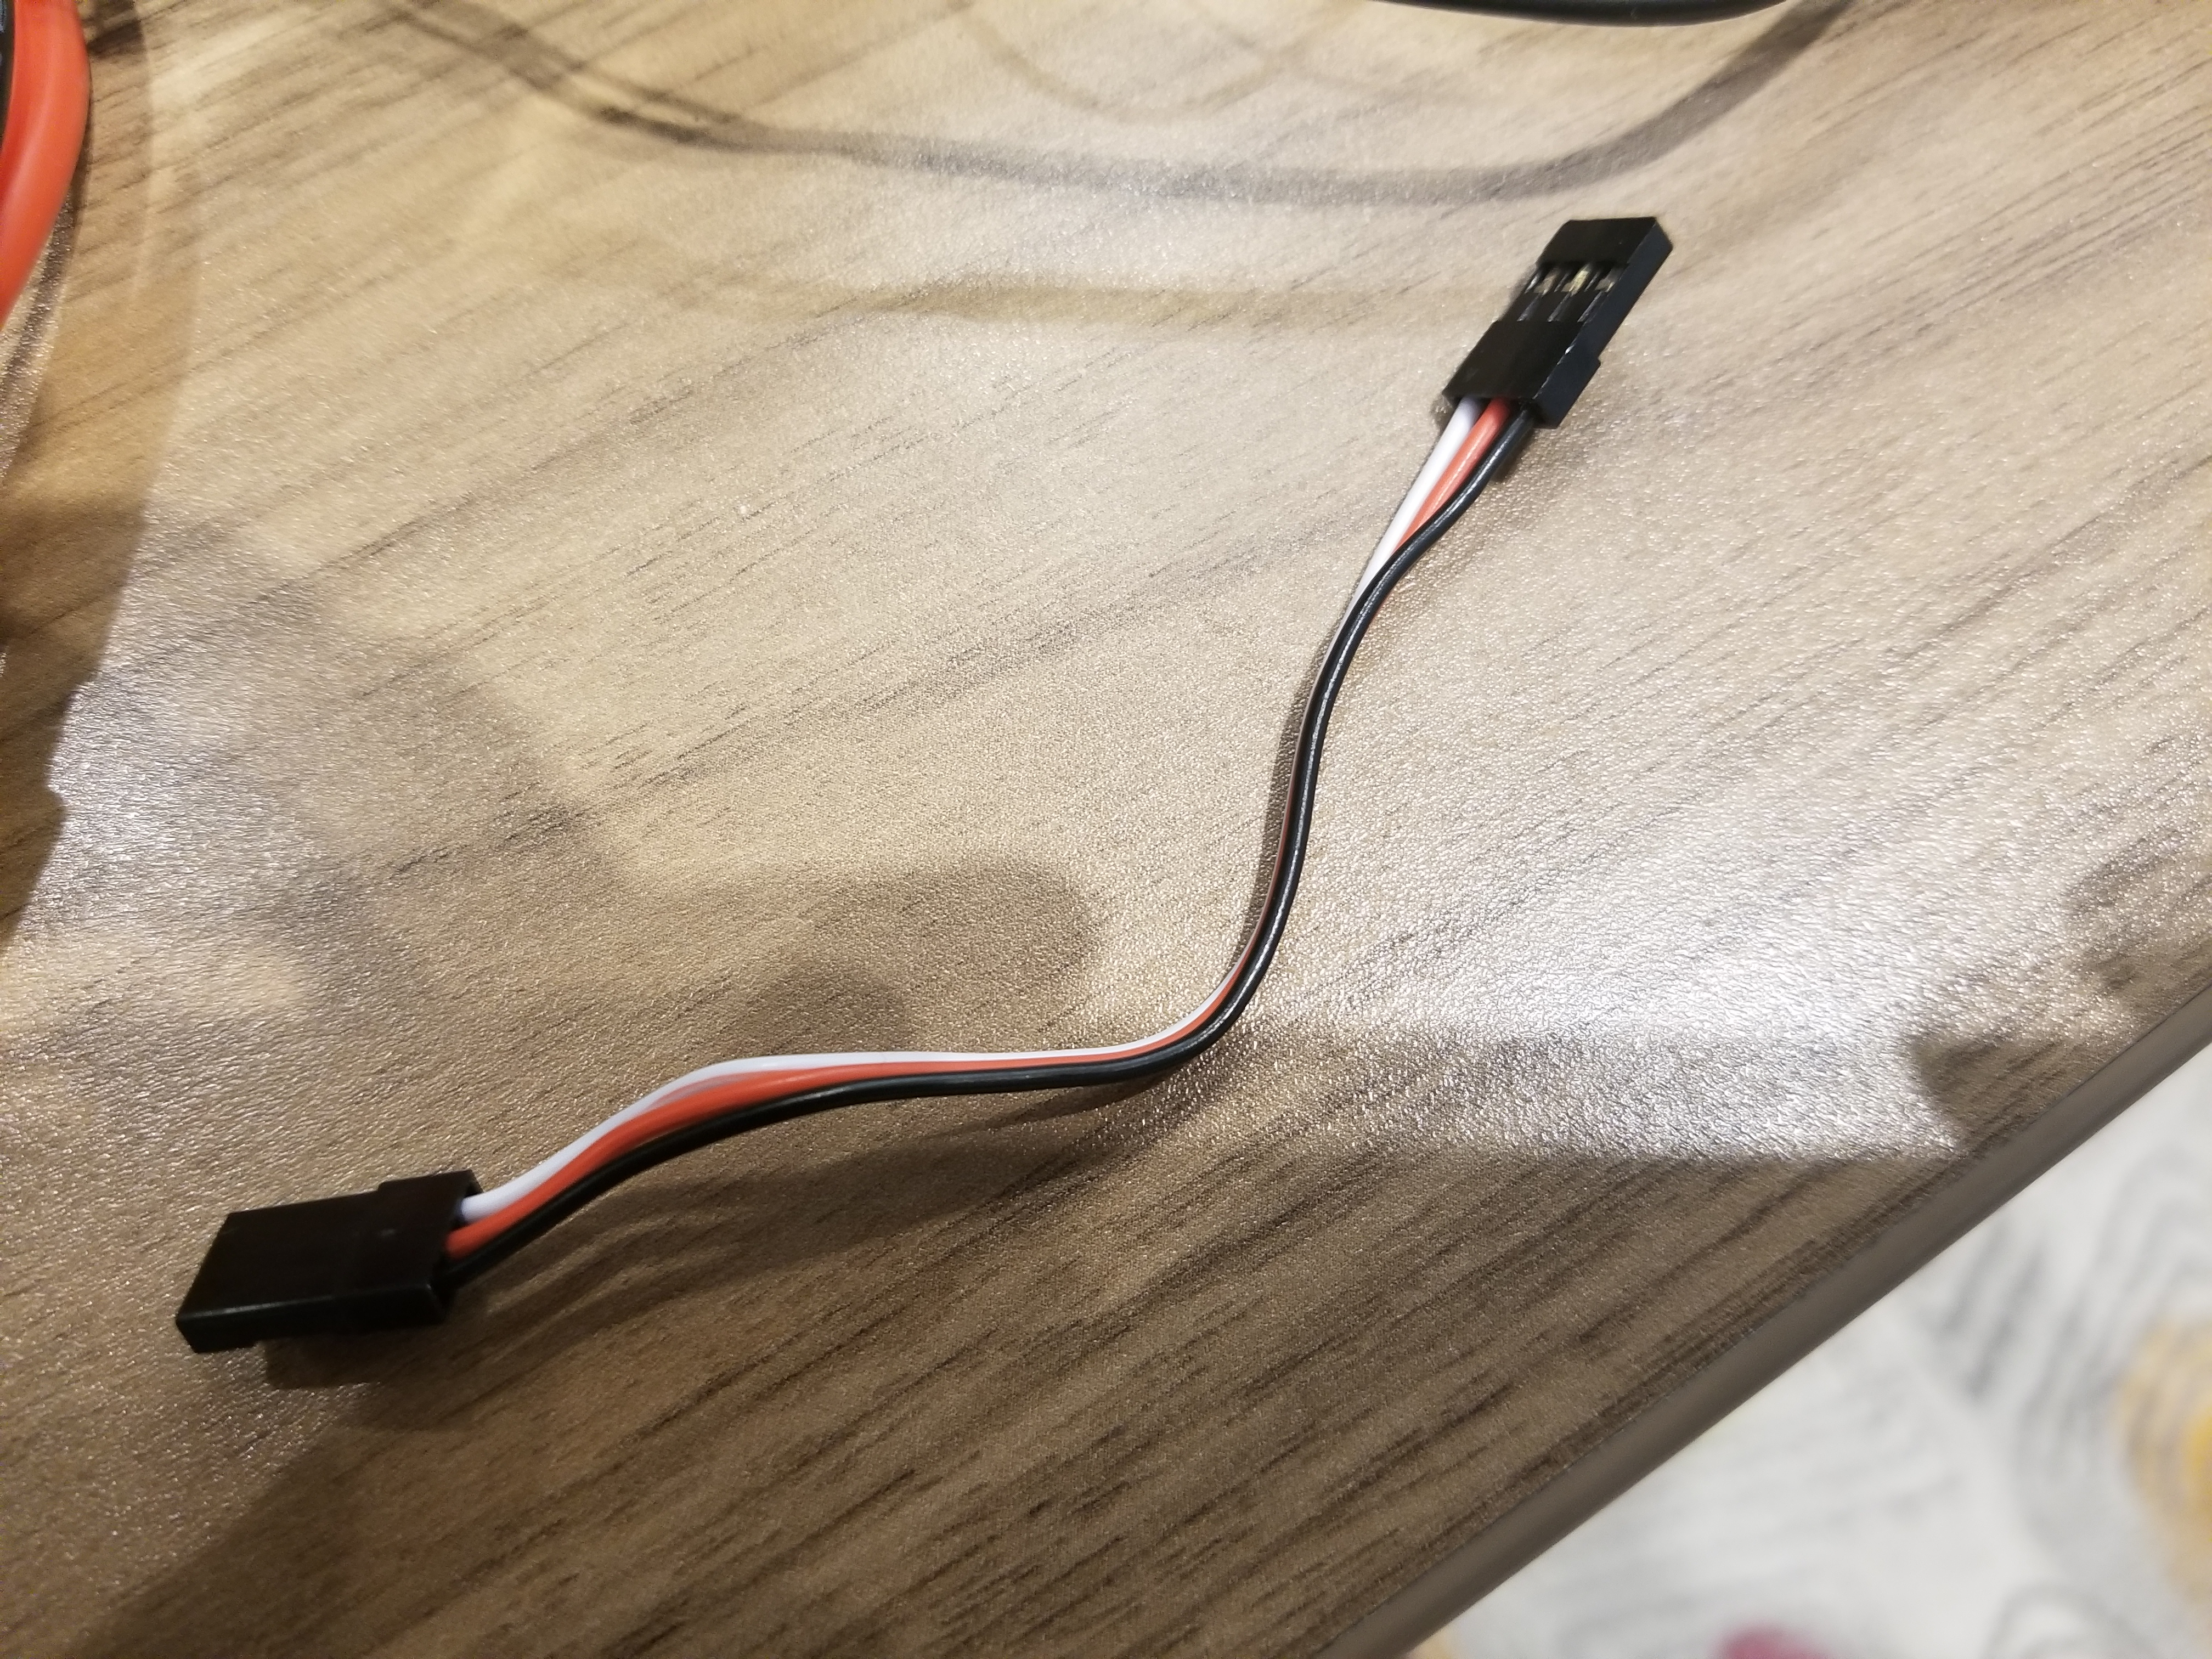 Pixhawk Flight controller connections · Issue #85 · Dronecode/camera